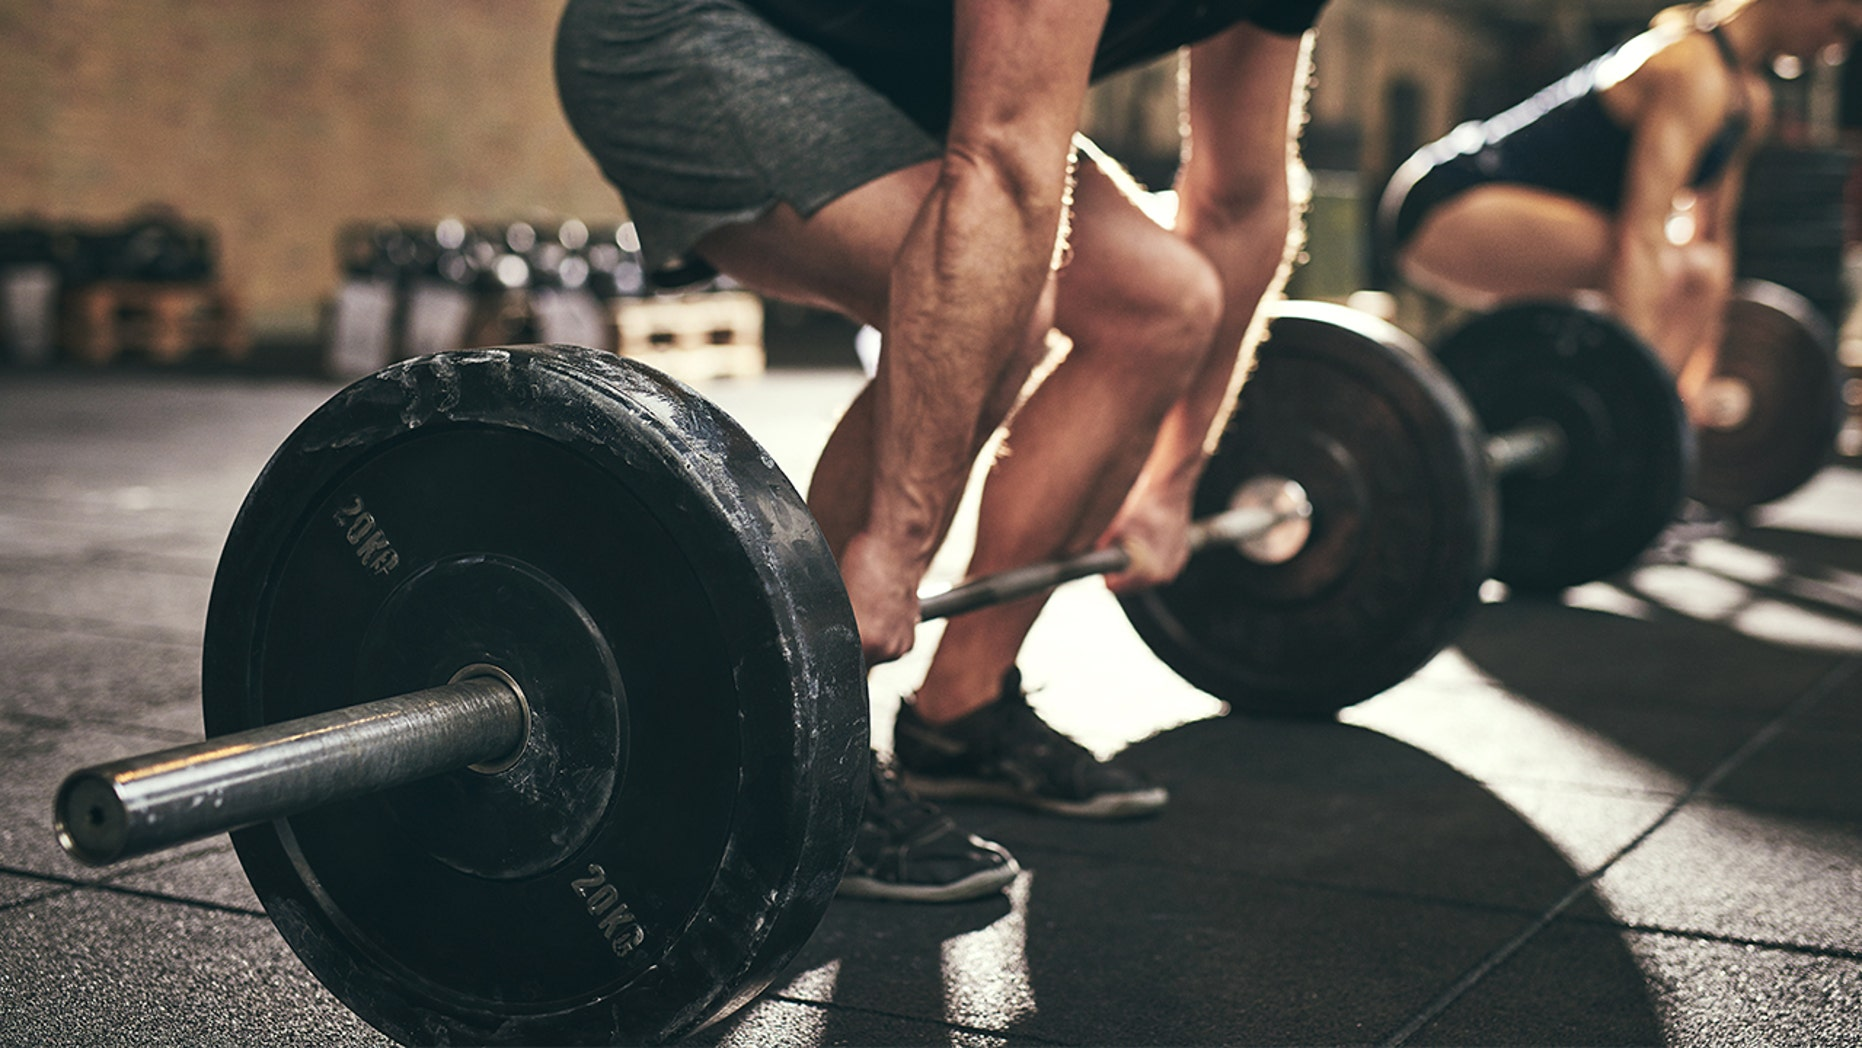 A young man was attacked at the gym while lifting weights for being too loud.